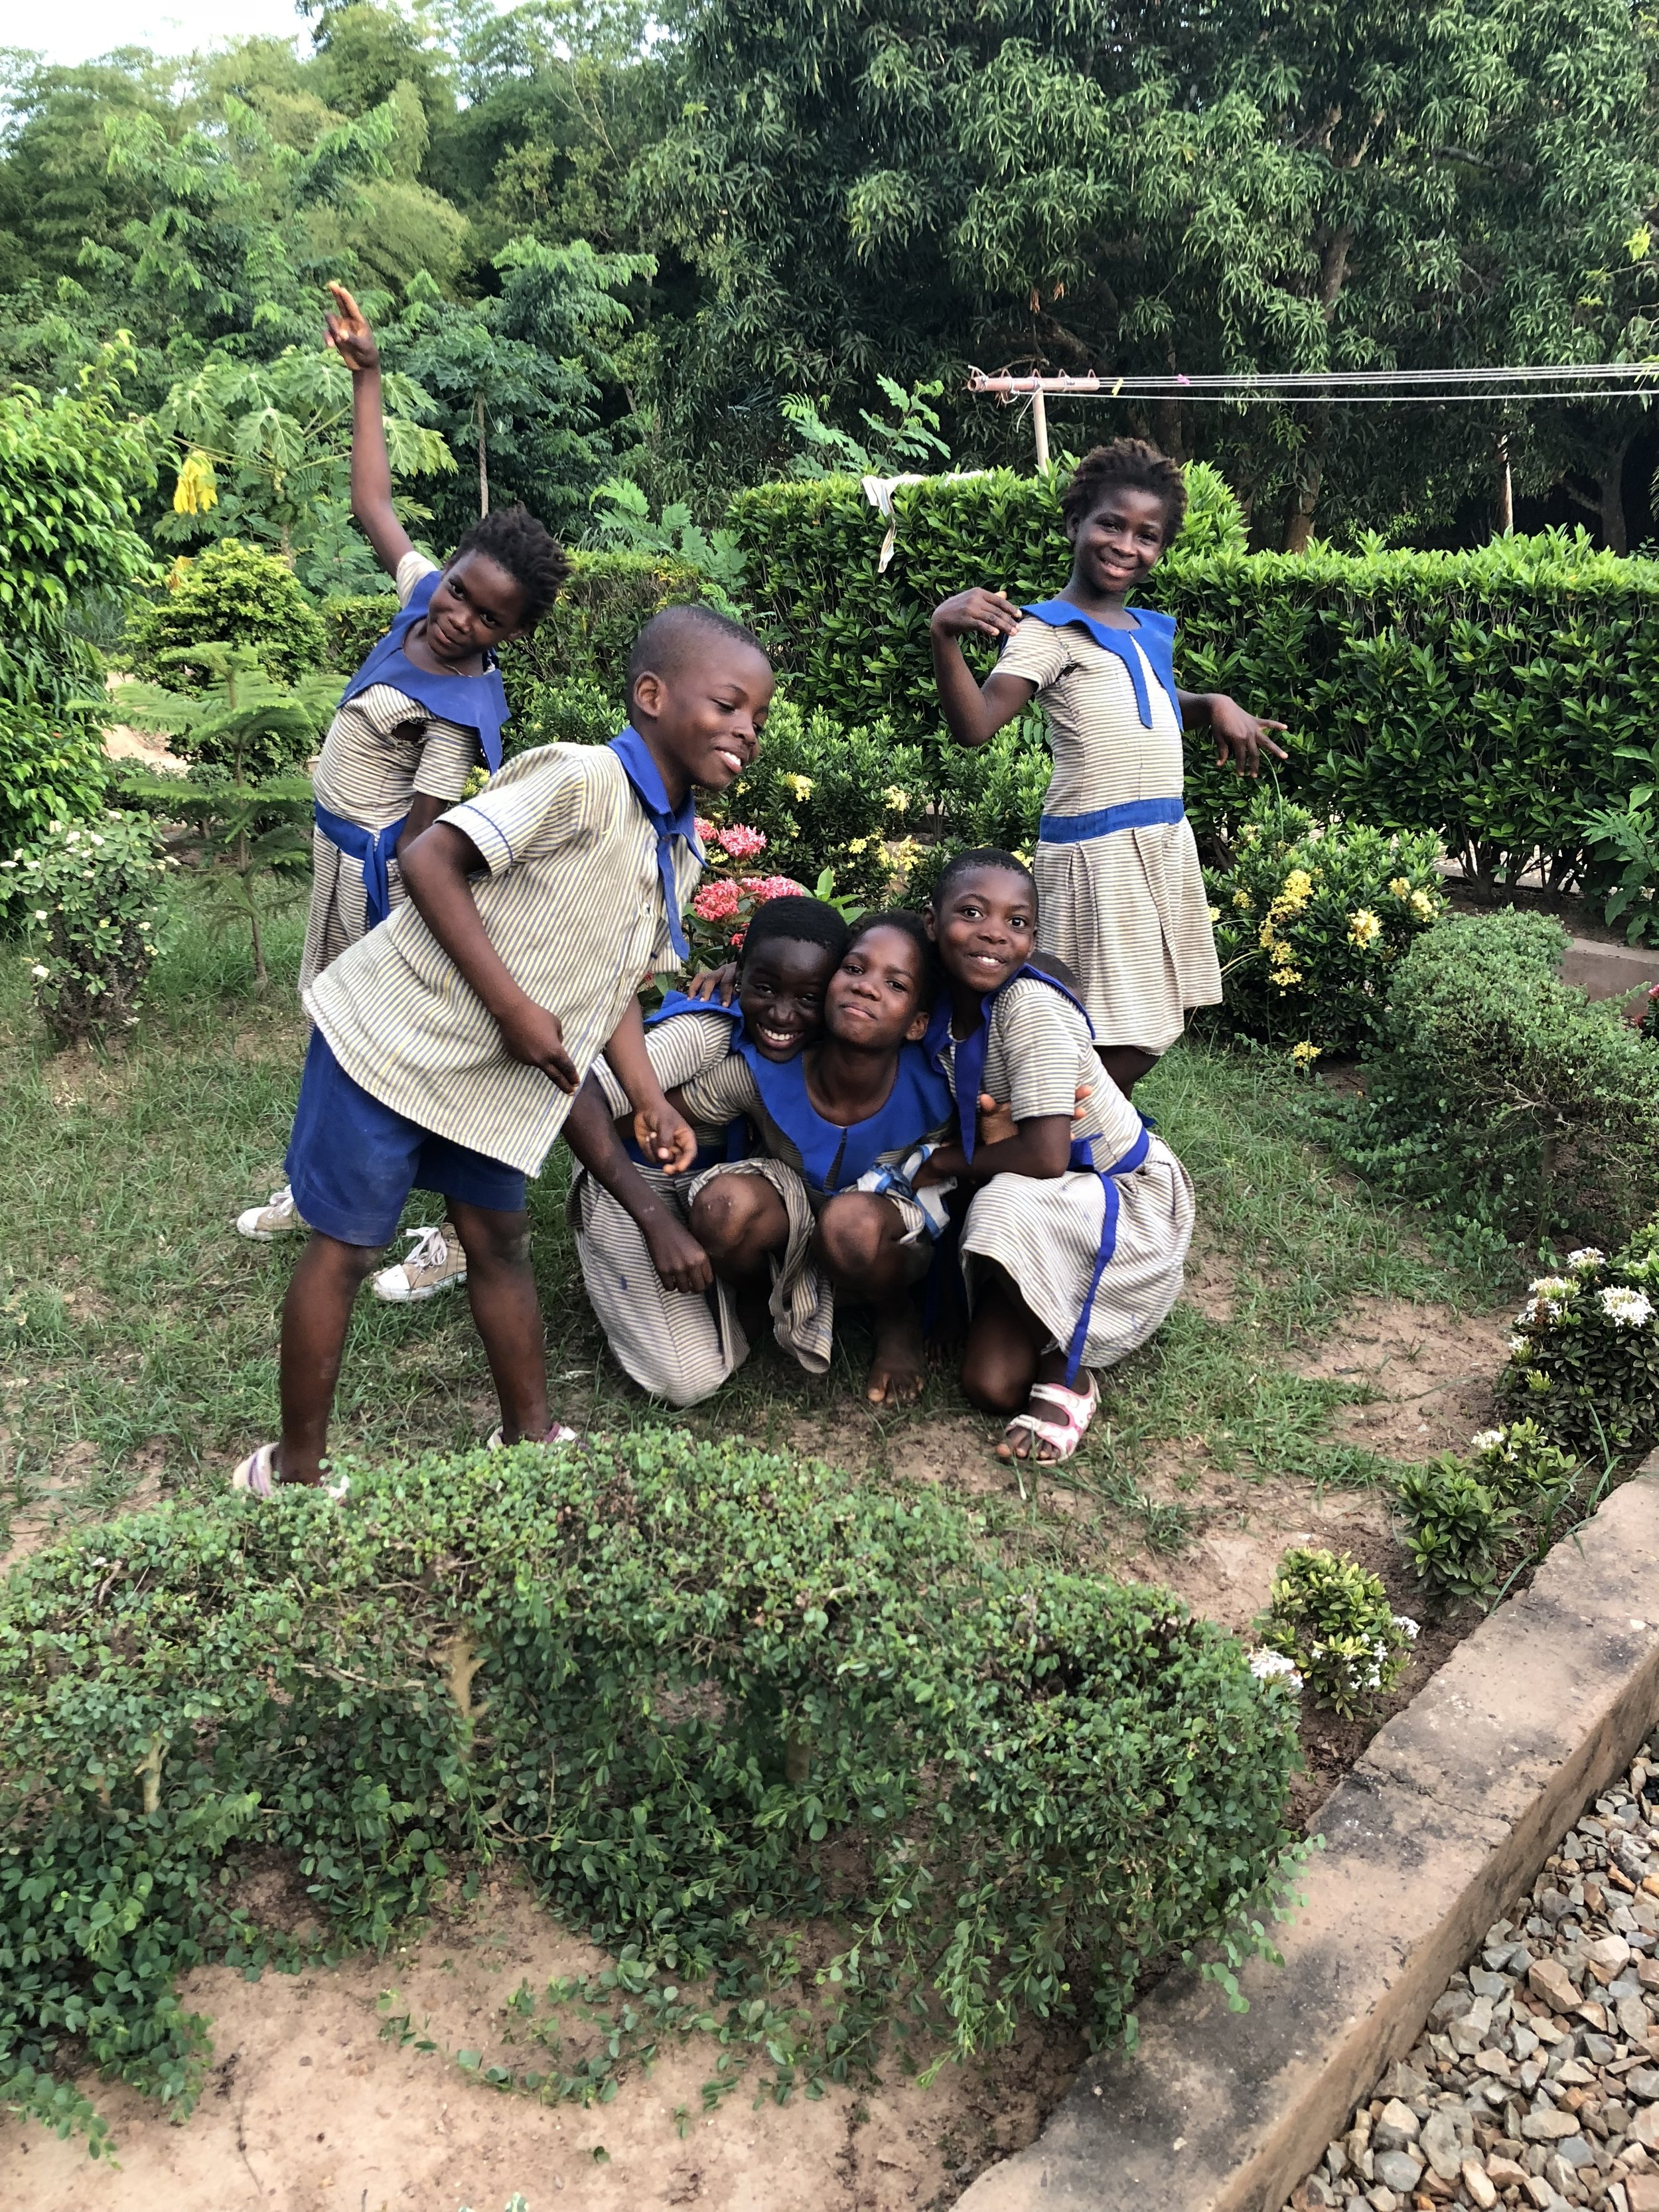 Launching of our sponsorship program! - We are excited to announce that all of the children at Missahoe orphanage and Montessori school are now available to be sponsored! Go to Sponsor a child to learn more!